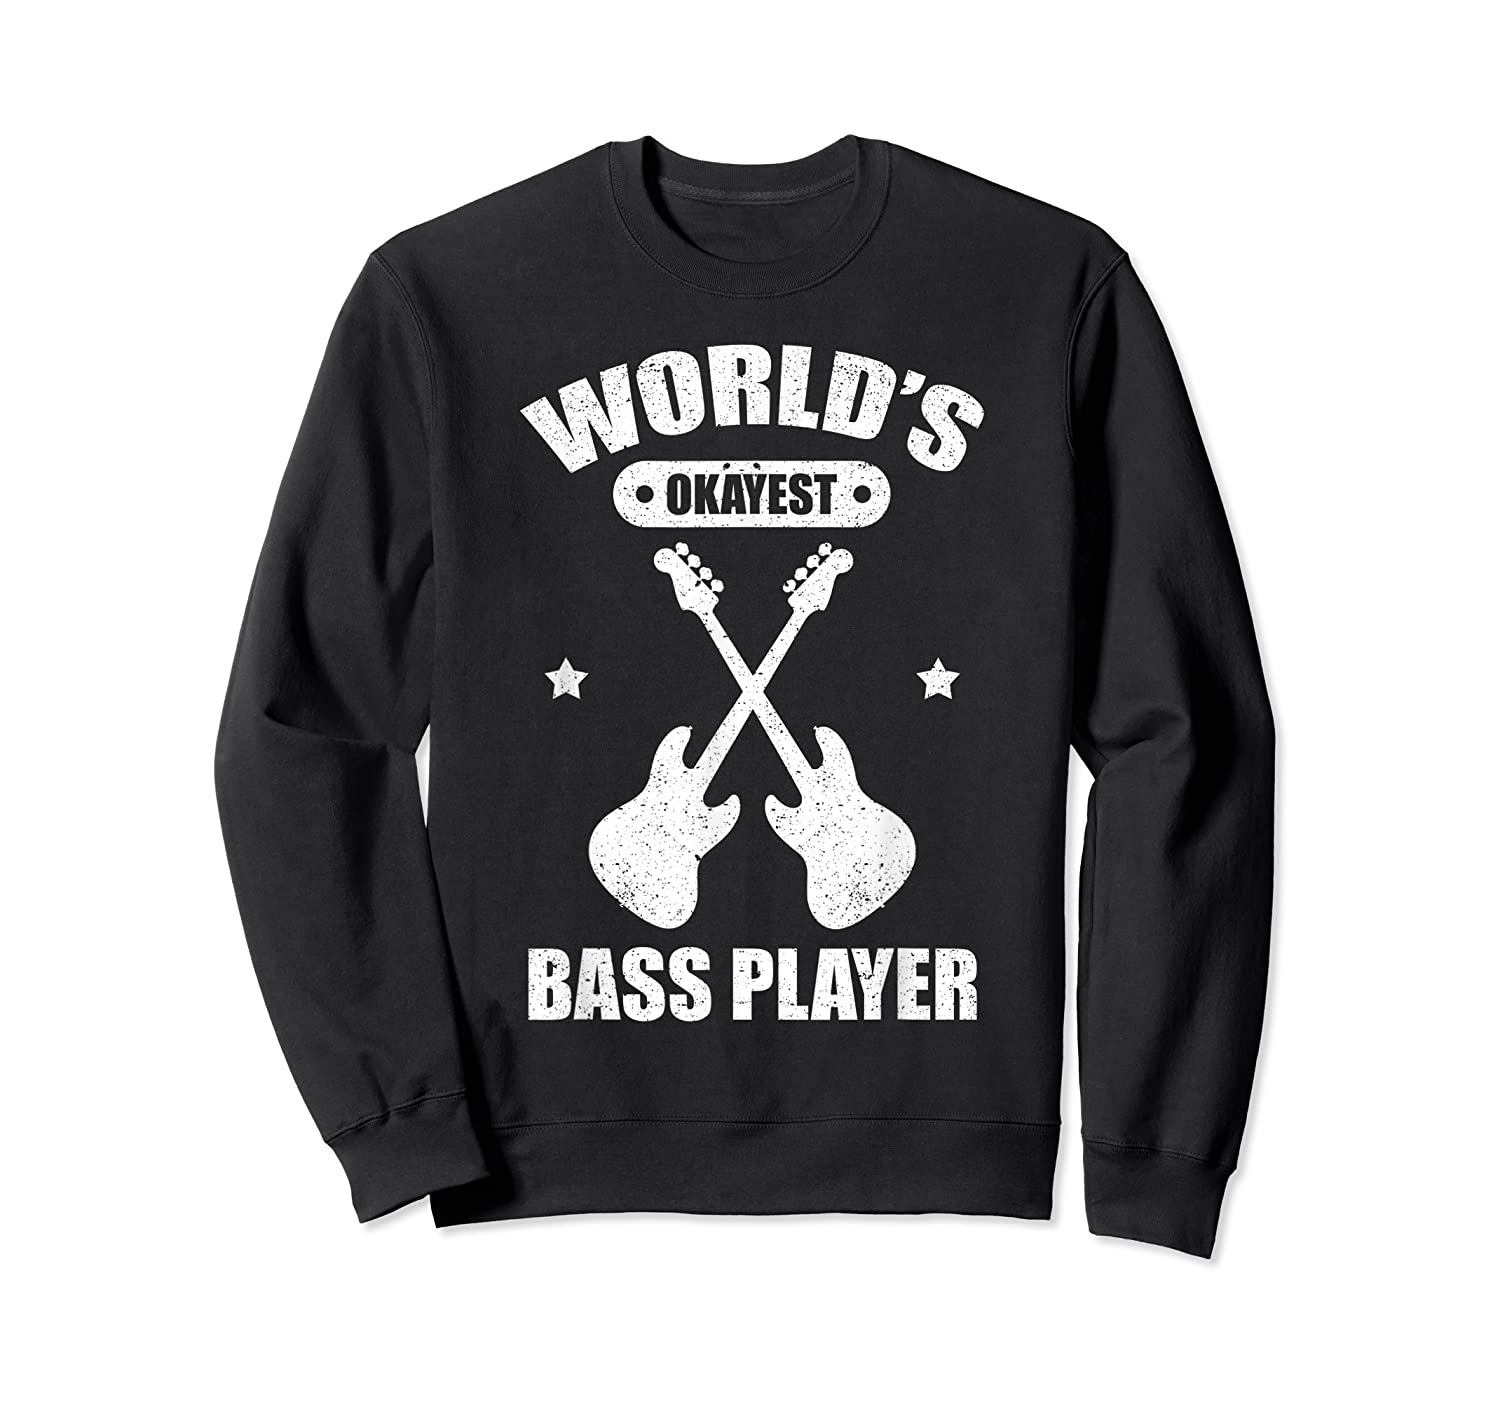 World's Okayest Bass Guitar Player Funny Music Lover Shirts Crewneck Sweater